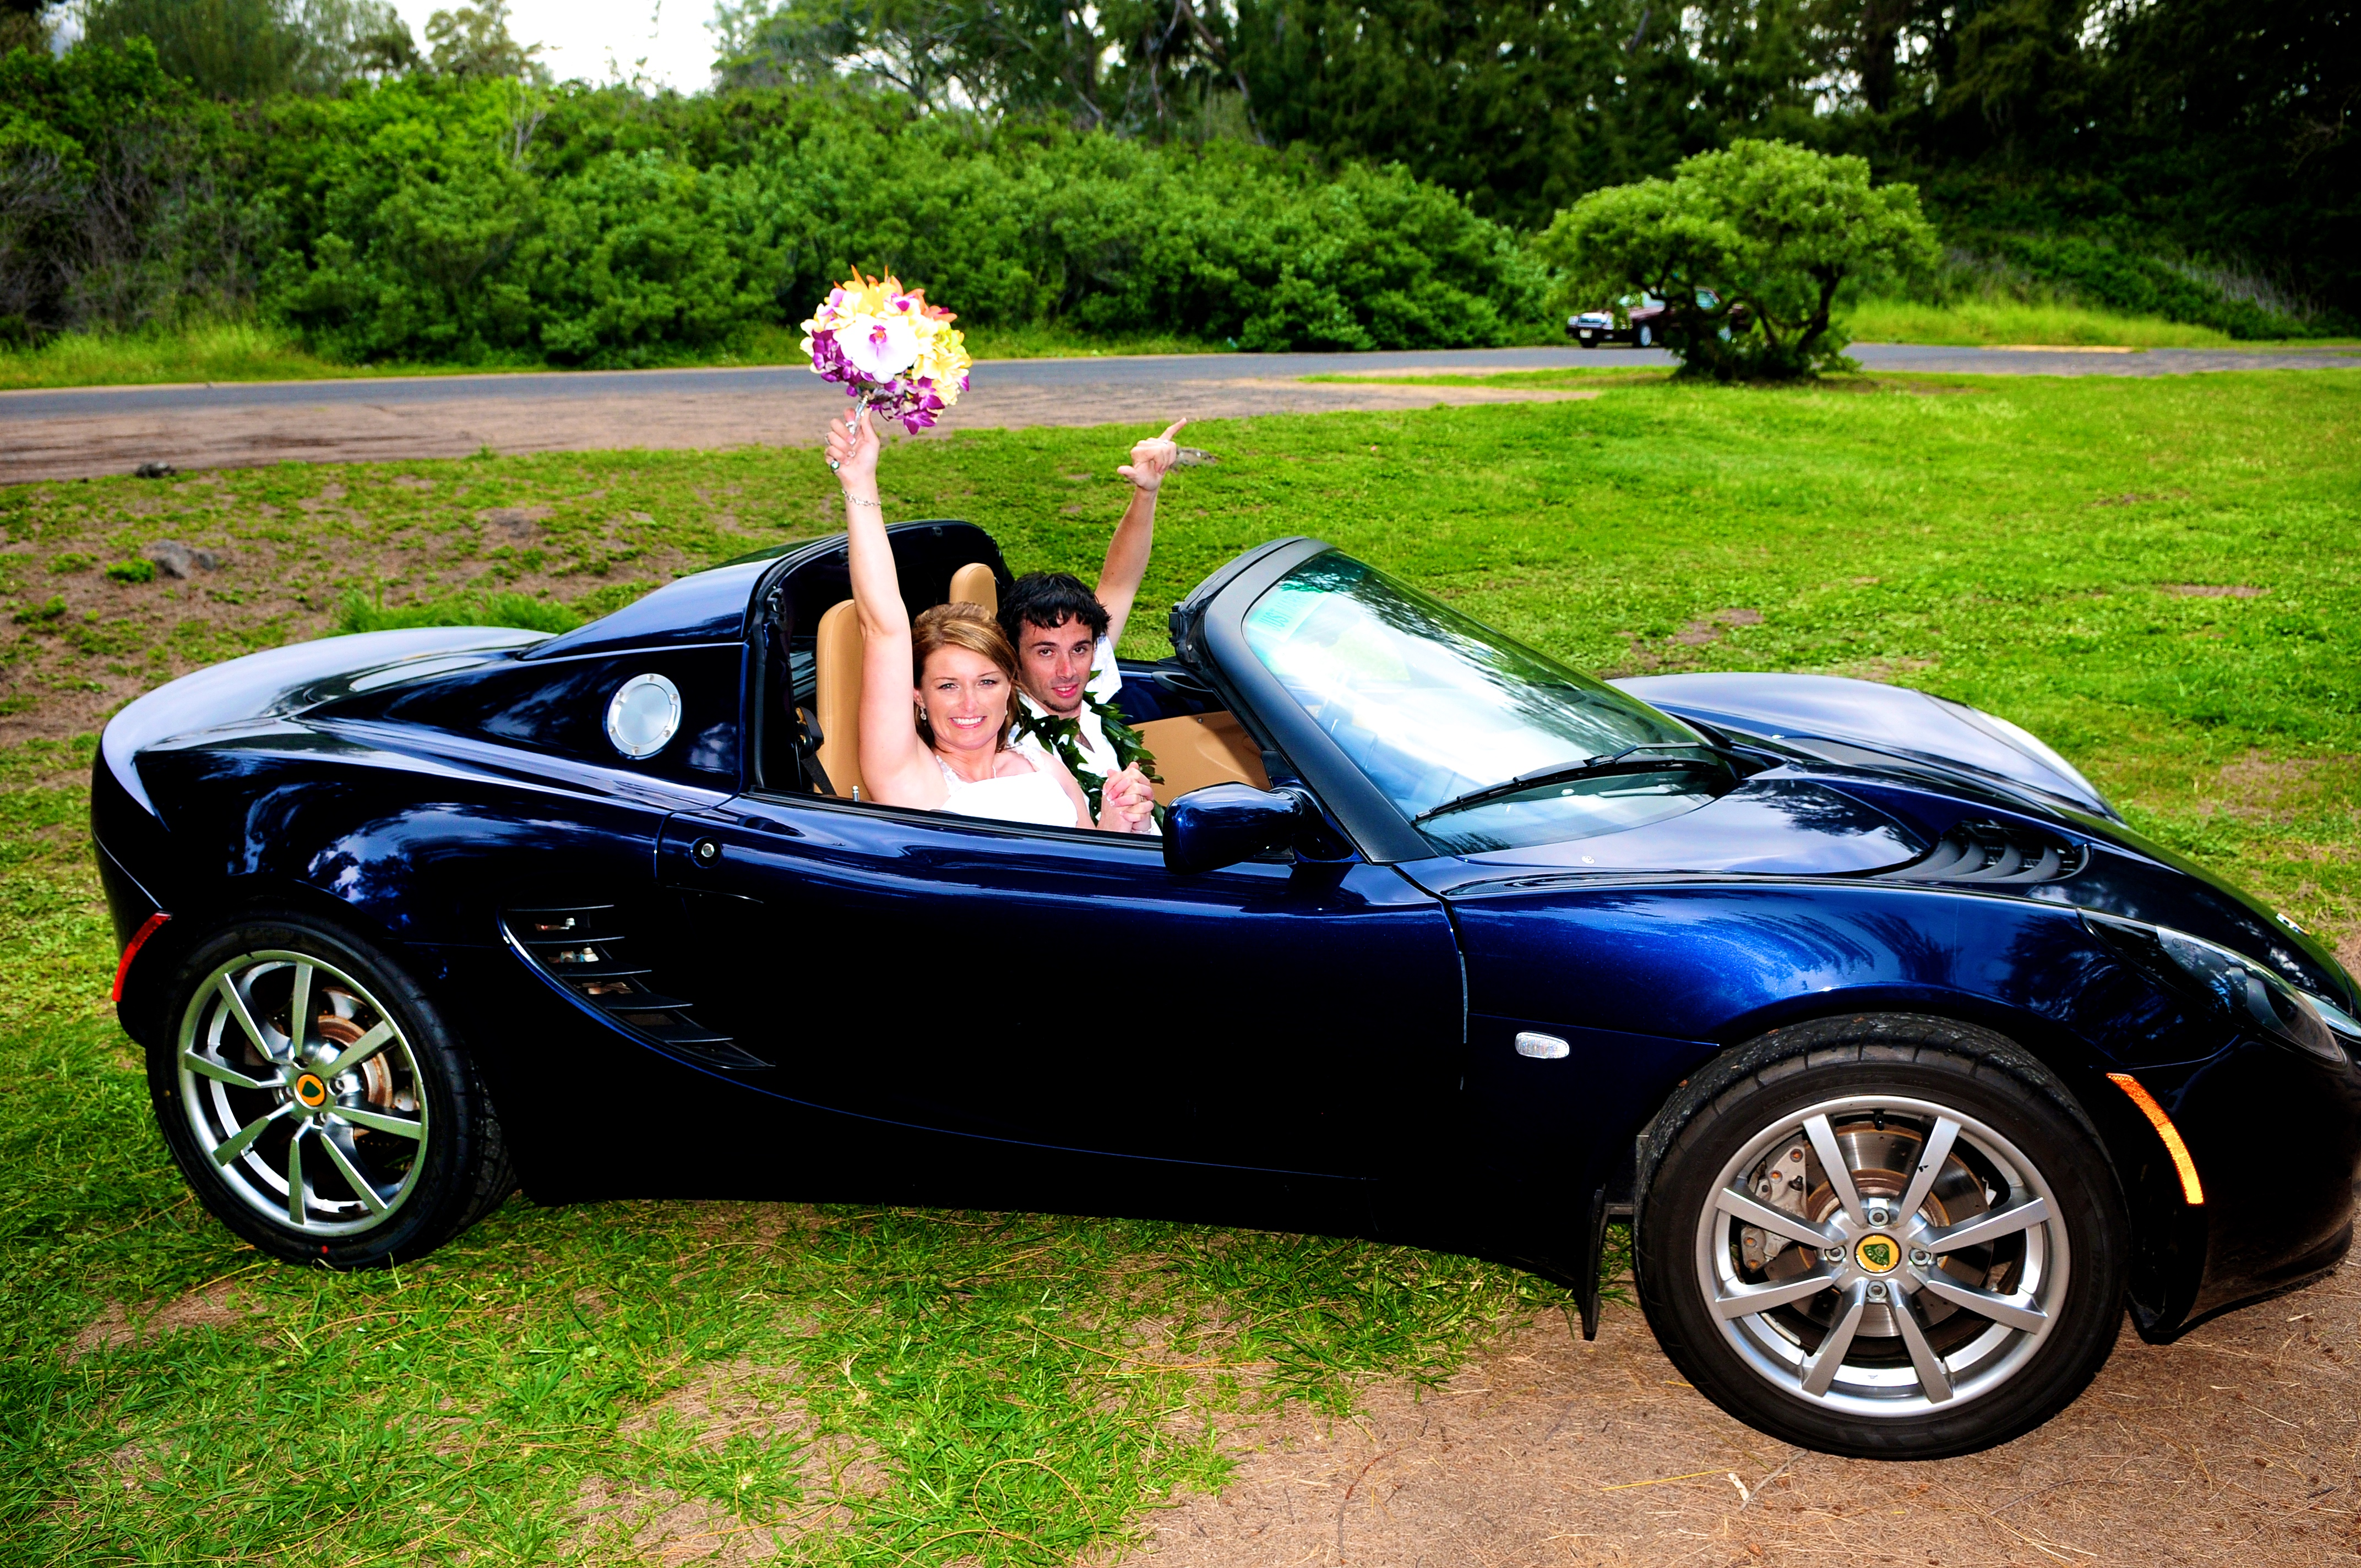 alohaislandweddings- Lotus car -33